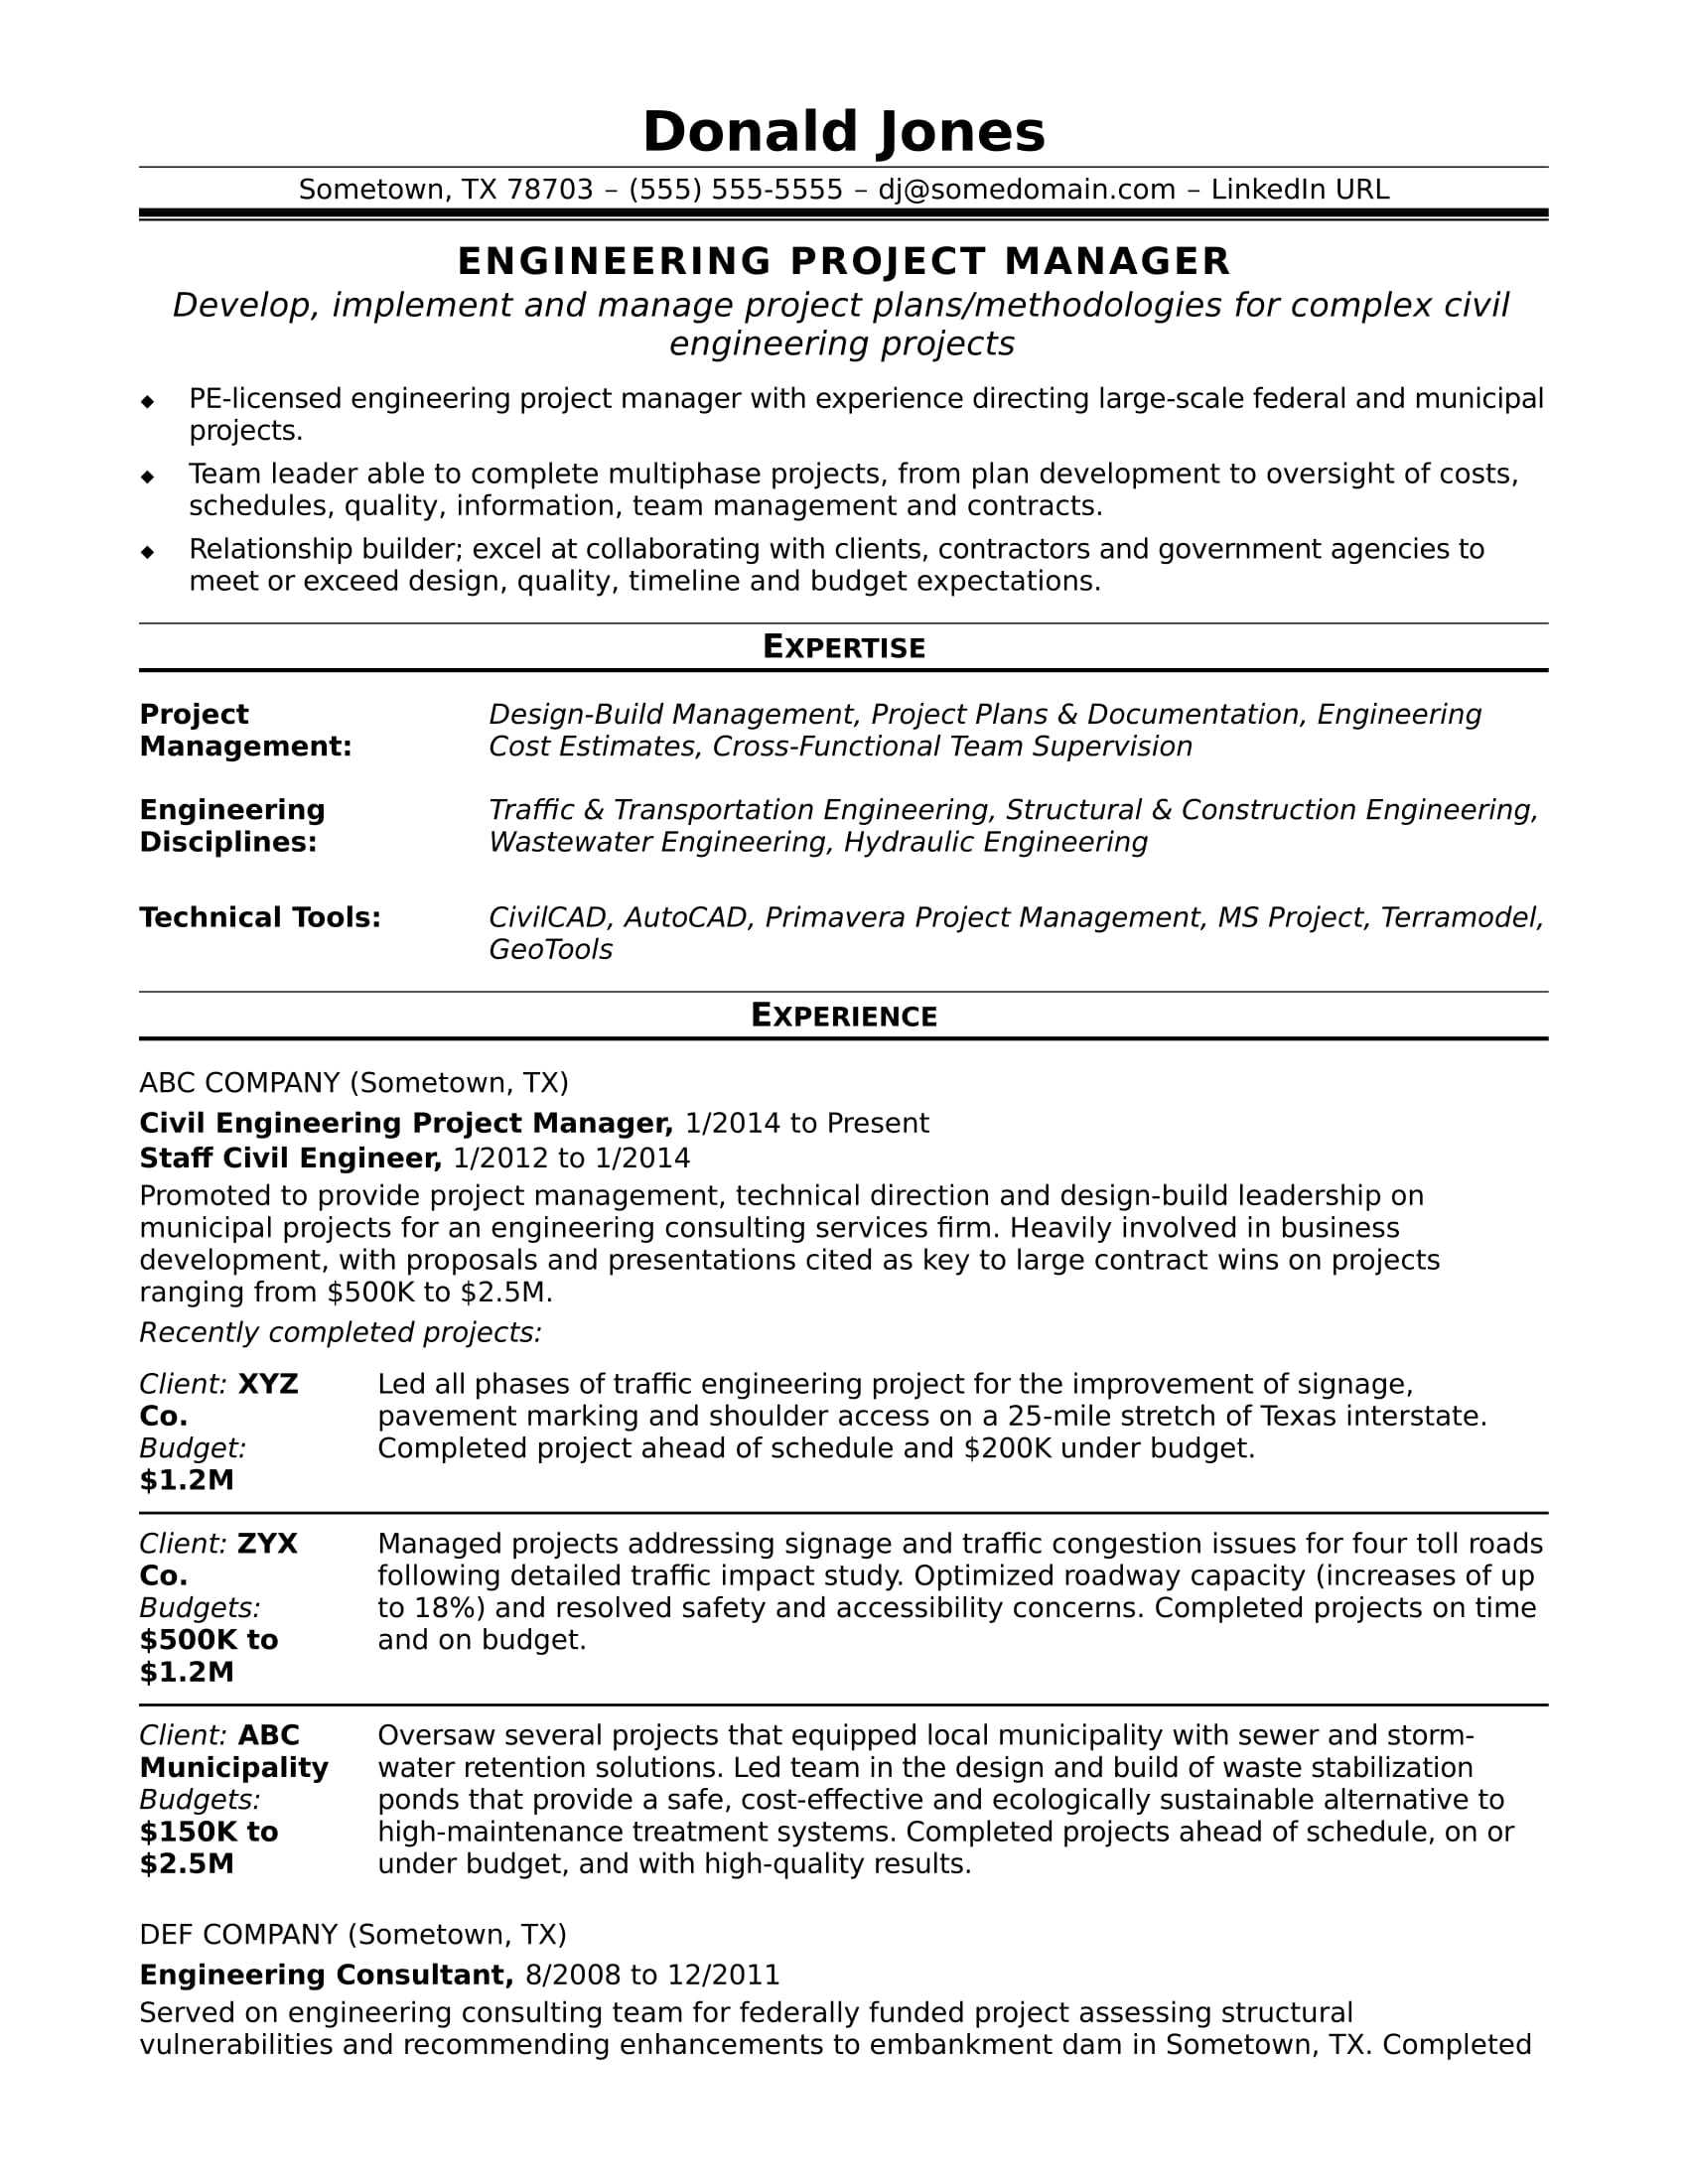 sample resume for a midlevel engineering project manager  monstercom - sample resume for a midlevel engineering project manager